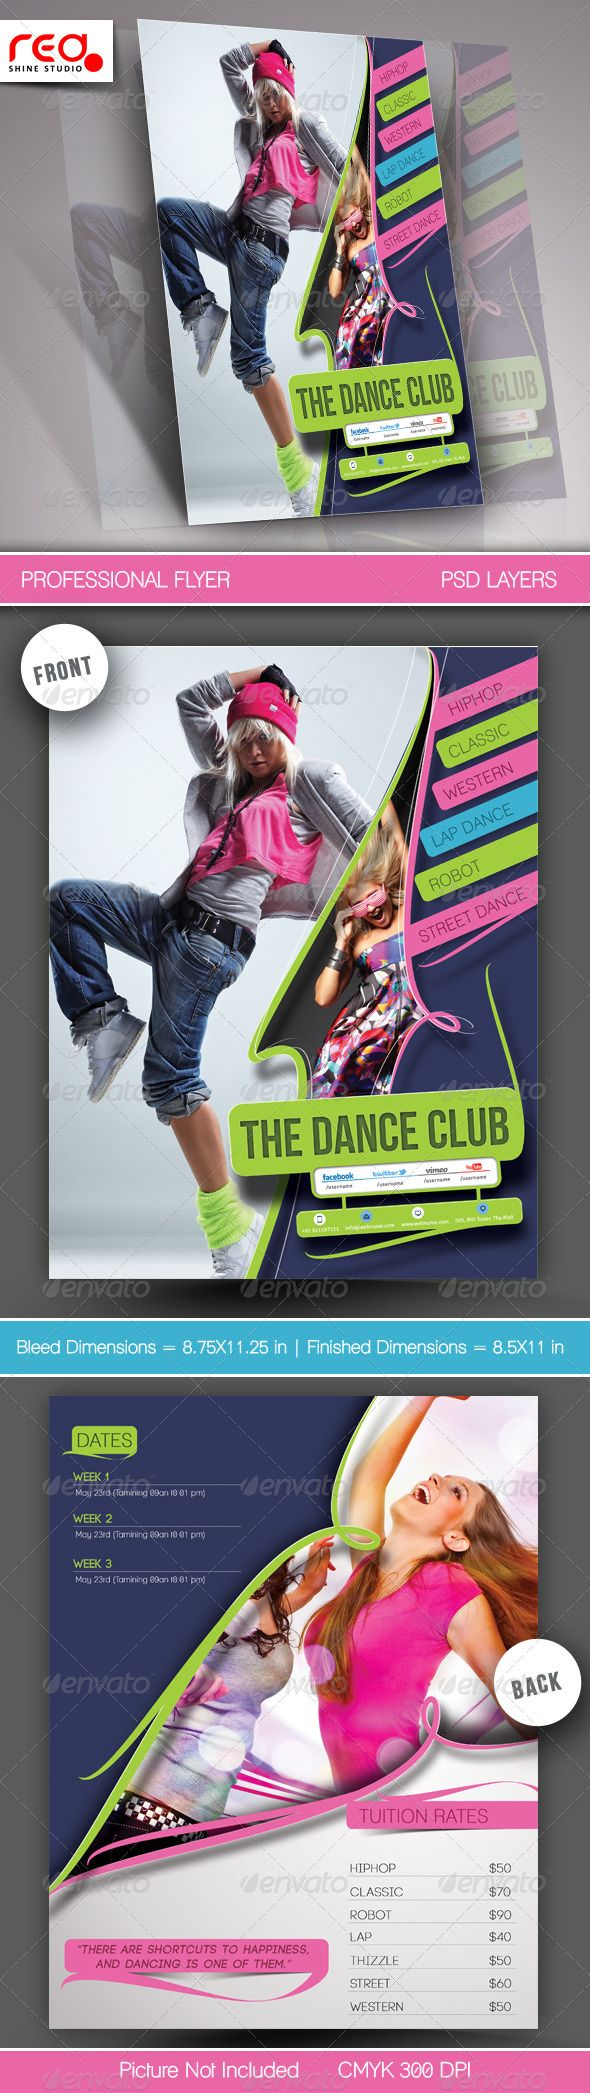 Dance Academy Flyer & Poster Template - 2   #GraphicRiver        SPECIFICATION 	 Both Side Flyer Template is 8.5 by 11 in (8.75 in by 11.25 in with bleeds) and is ready for print, because it's in CMYK at 300 dpi. The psd file can be edited in Photoshop, and to be simple able to change the text.  	 2 Layered Photoshop file in zip folders with editable text and